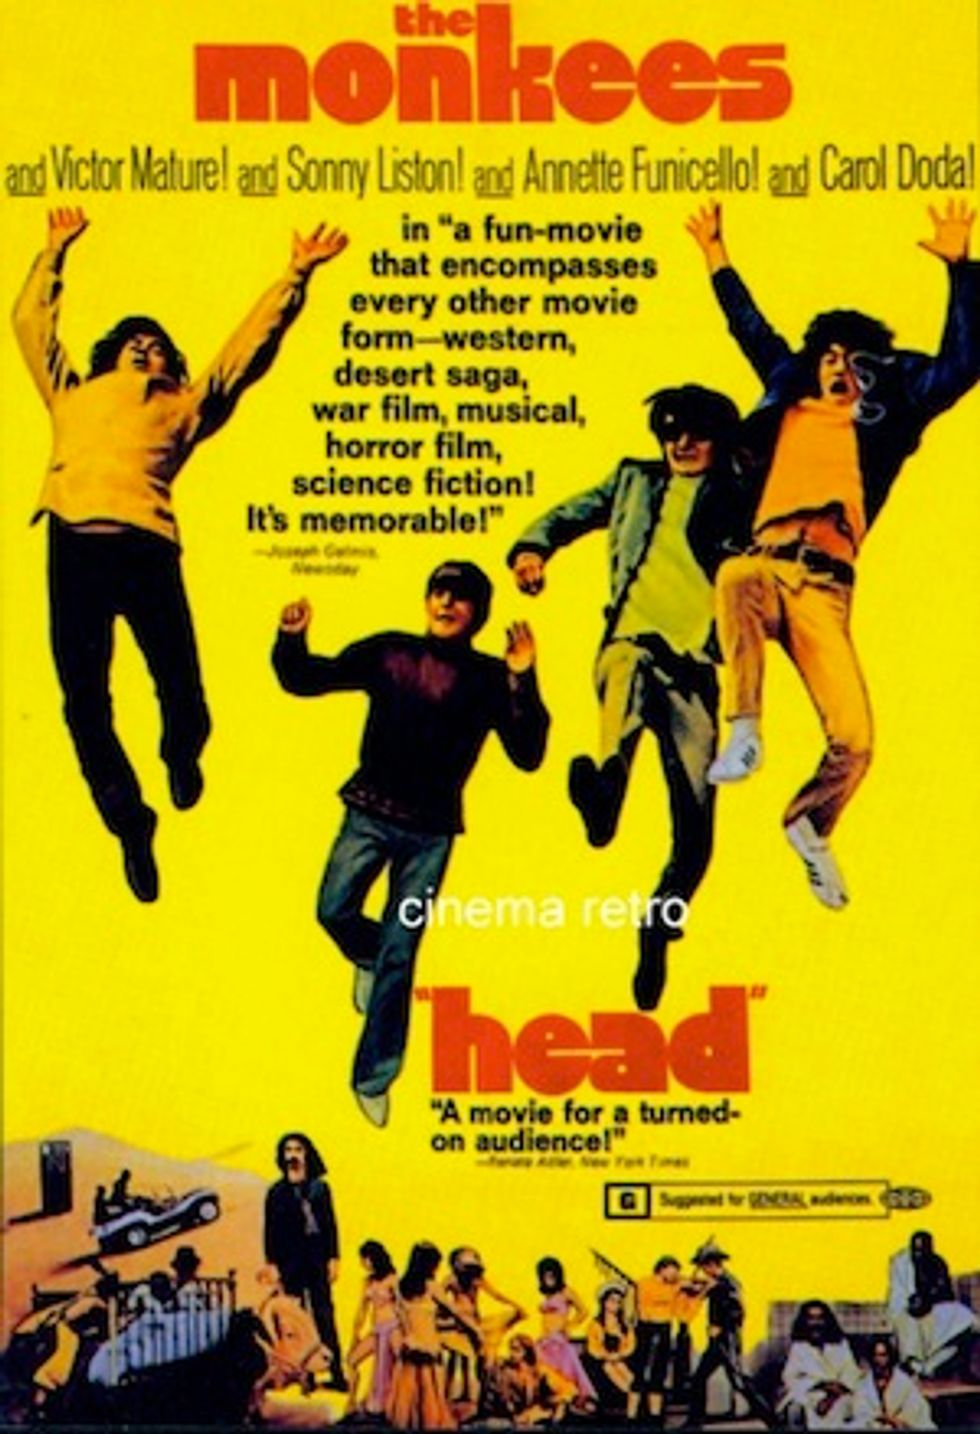 Tips for Today: The Monkees' Head in NYC + Chickfactor in LA + Expo Chicago + The Helio Sequence in London